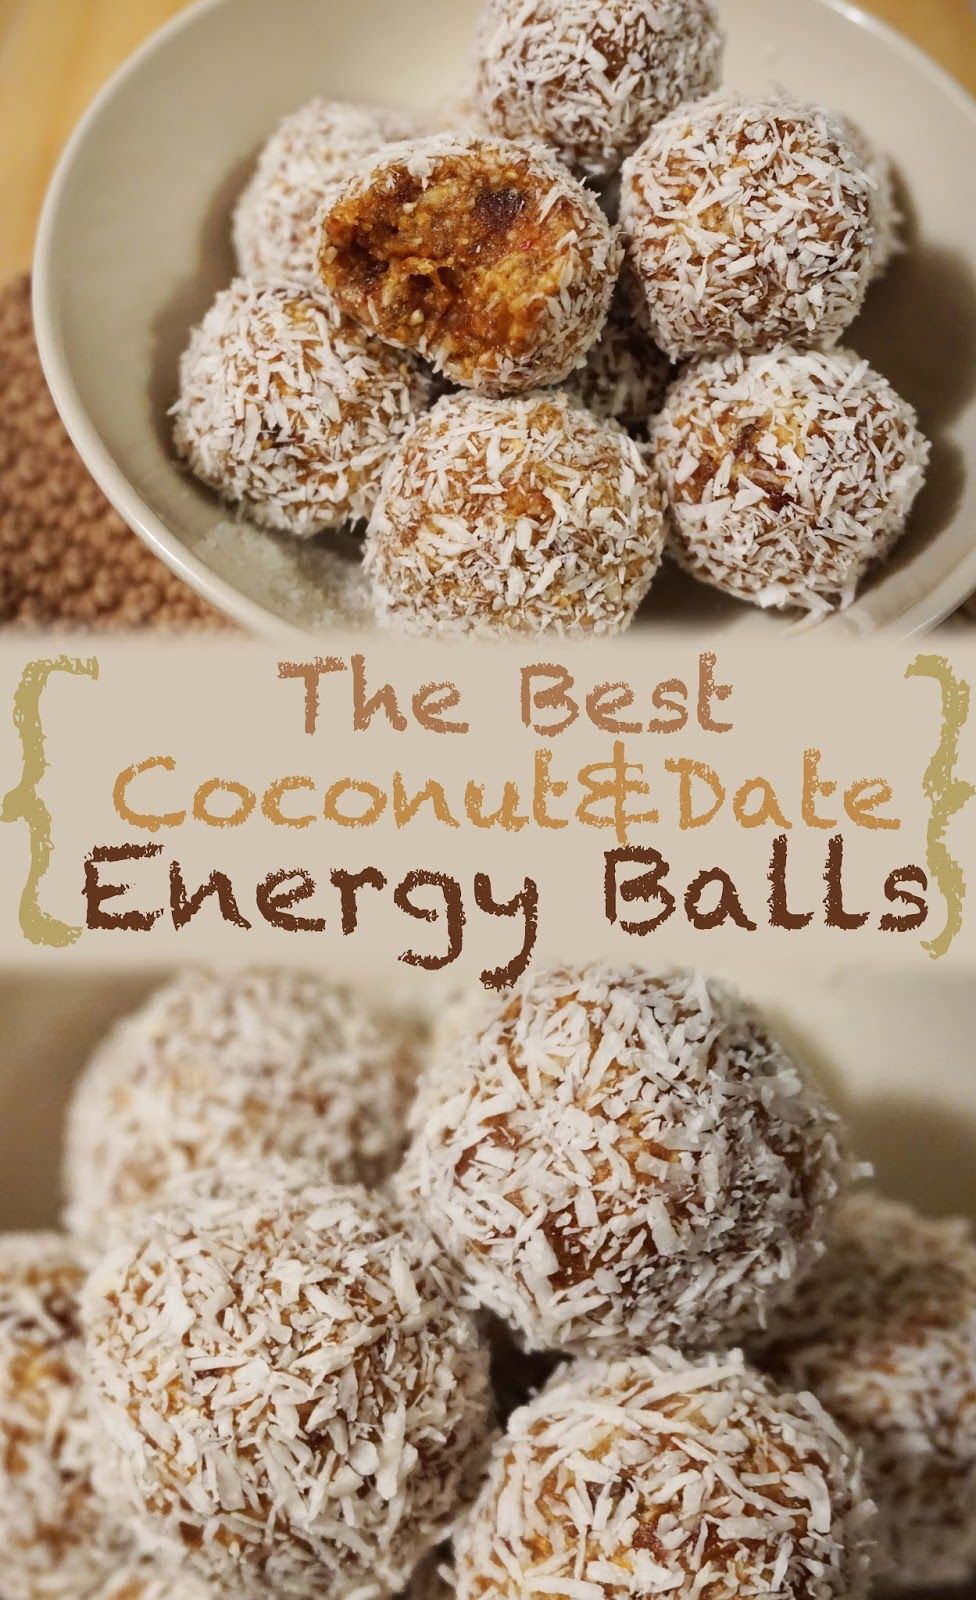 The Best Coconut Date oatmeal Energy Balls (raw vegan, gluten-free, processed sugar-free, low fat) with really little ingredients. No-bake! Super easy and yummy.